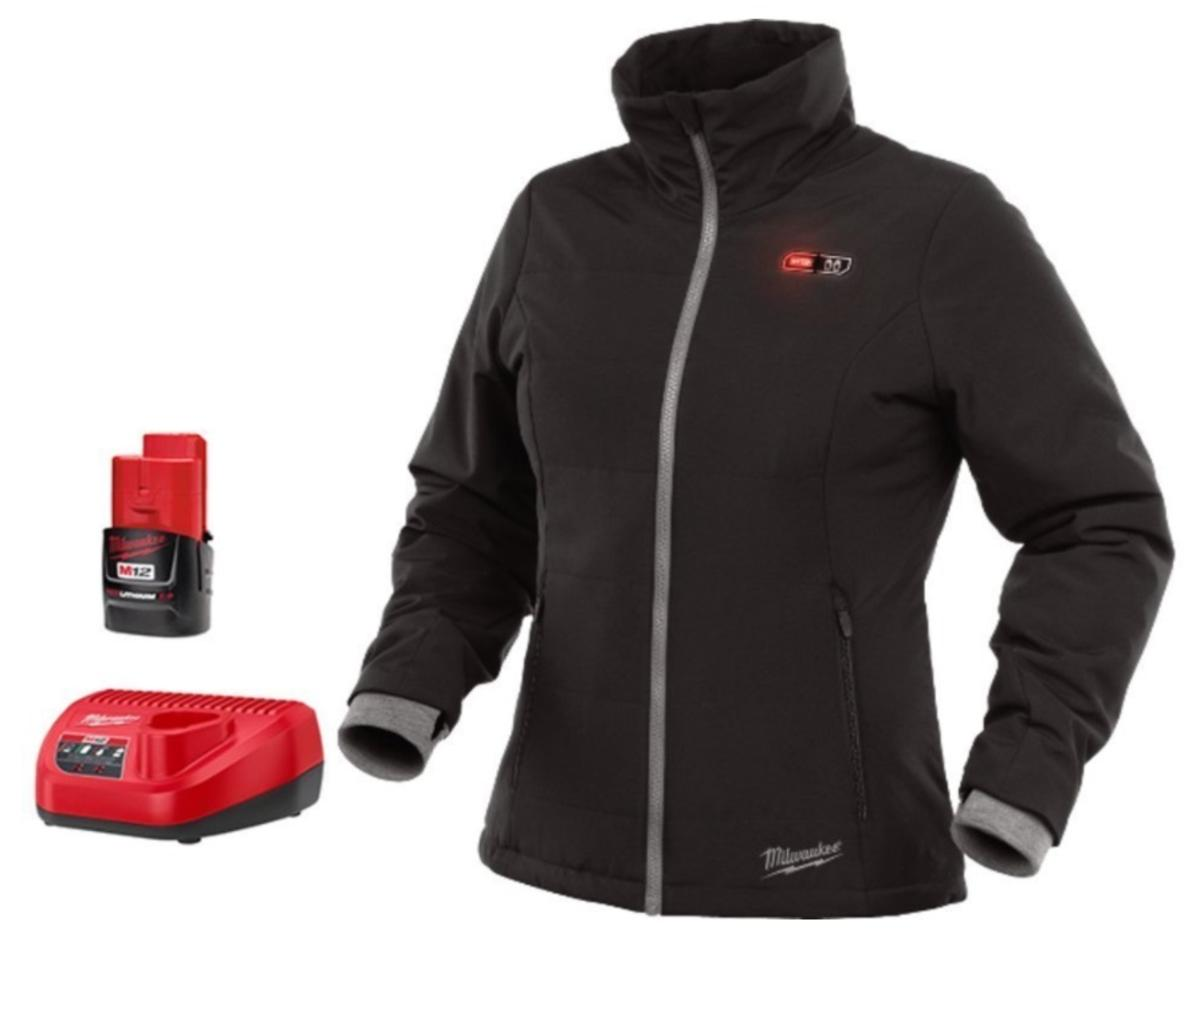 0f4f3c095cafc Milwaukee M12 Heated Women's Jacket Kit - The Warming Store